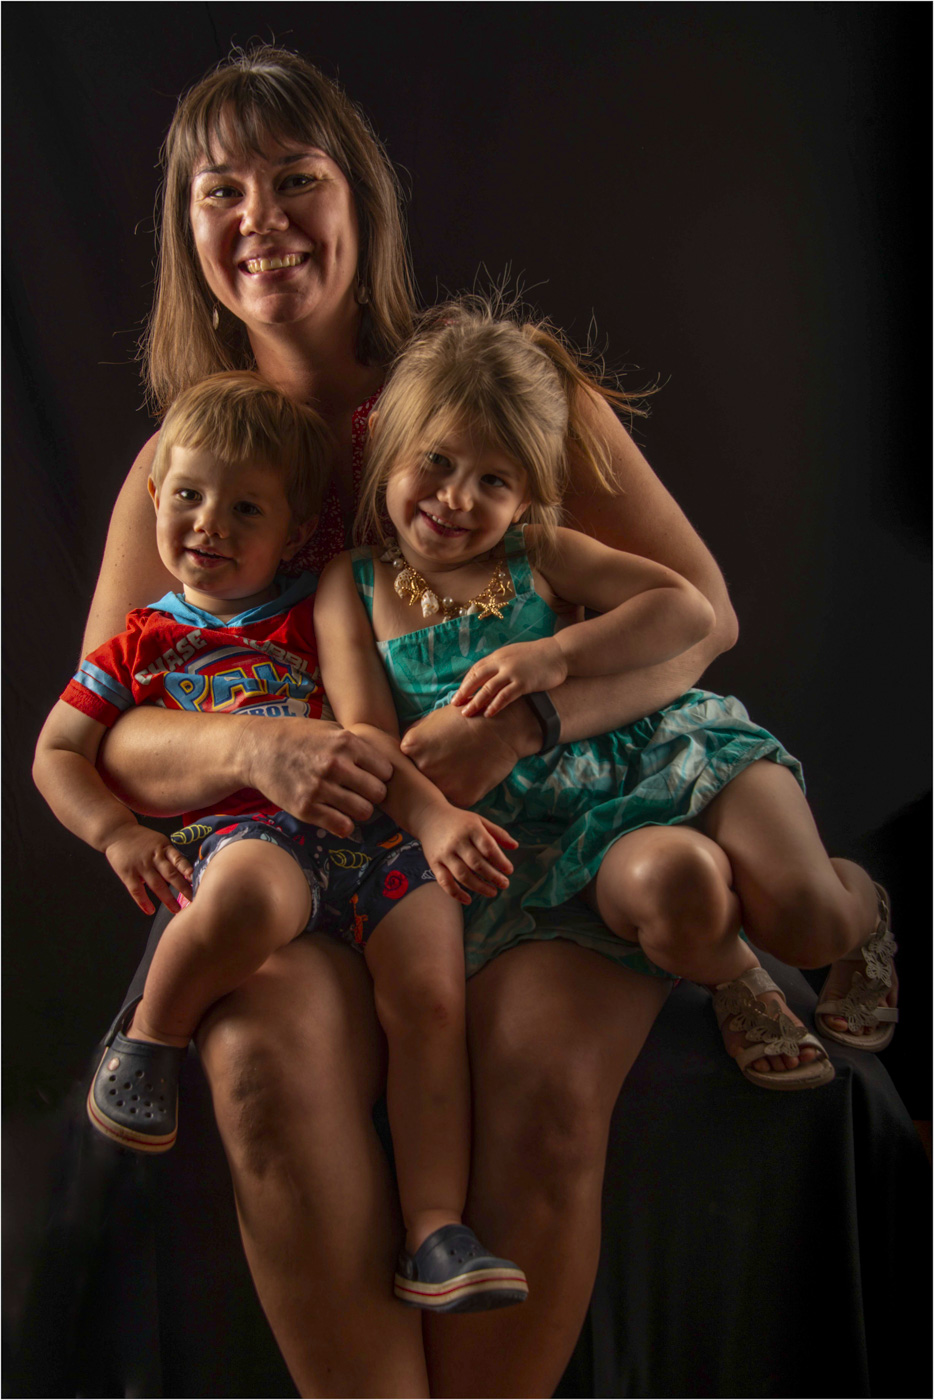 Rebeccah, Annabelle and Oliver - August 2018 - Derek Chambers